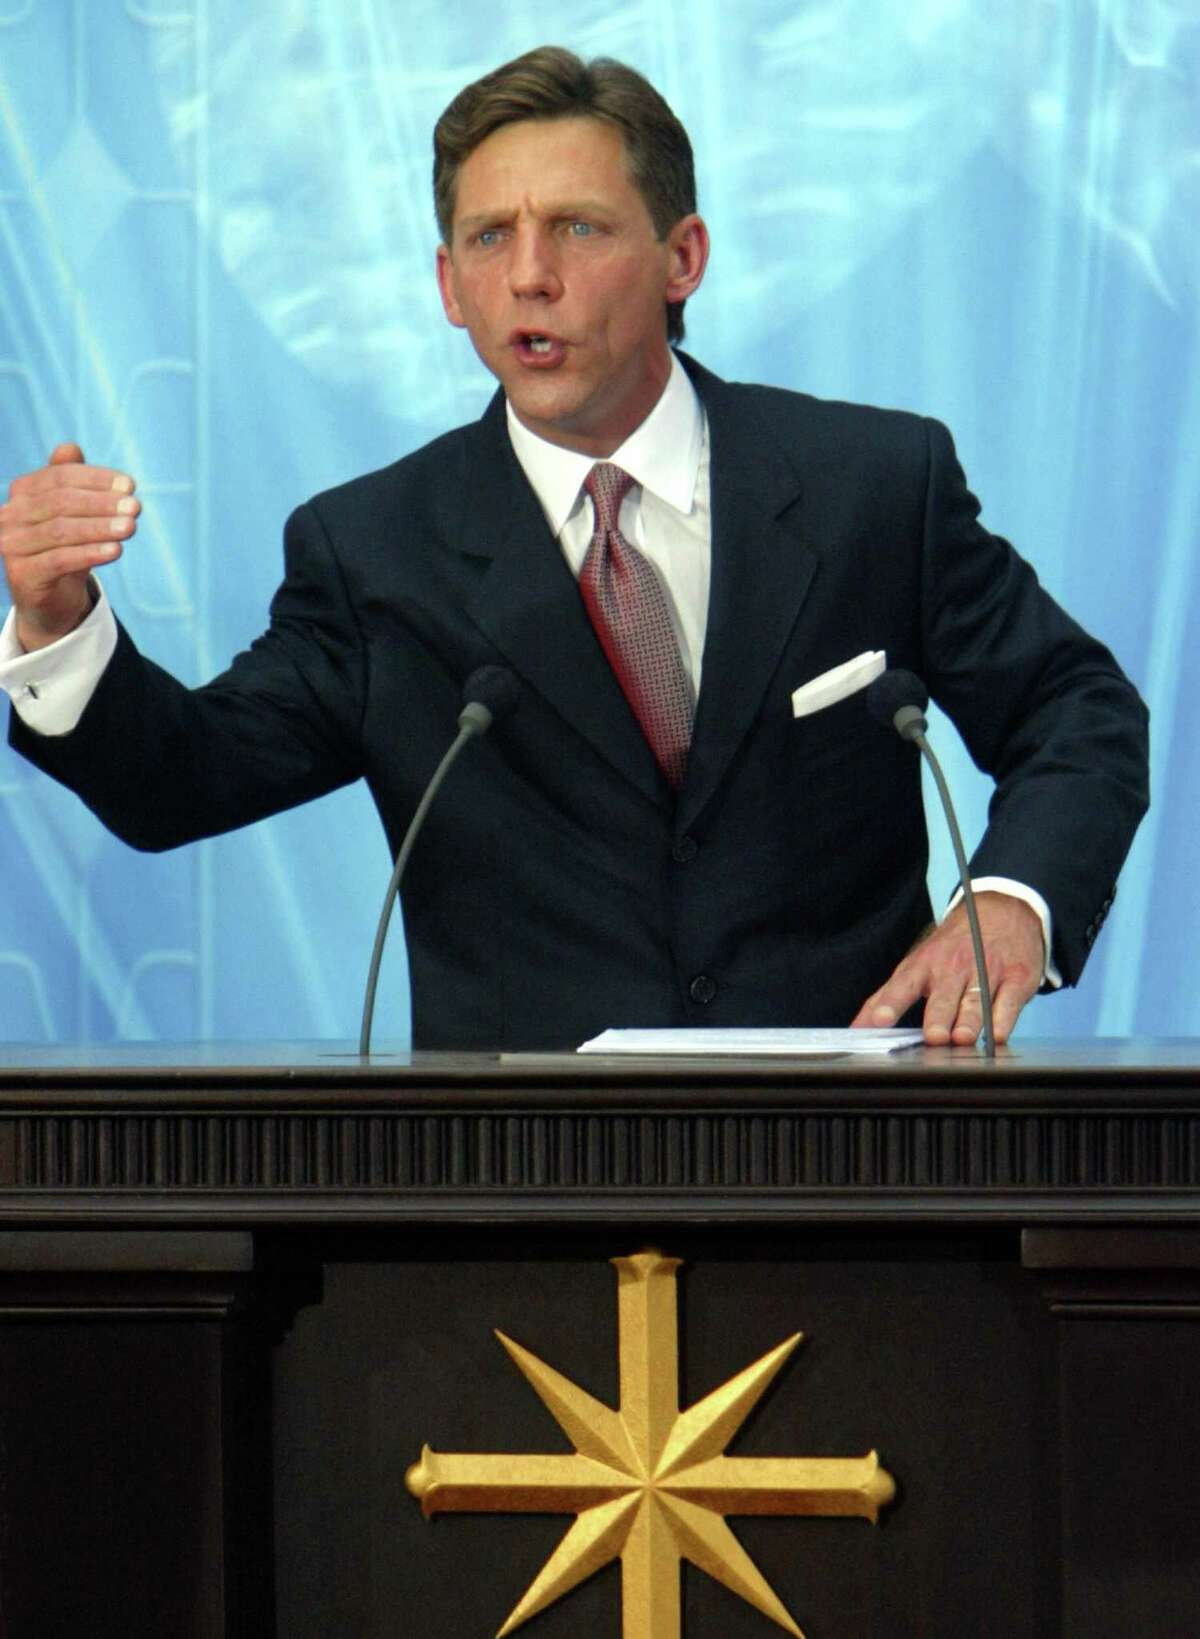 US Chairman of the Board Religious Technology Center David Miscavige speaks during the inauguration of the Church of Scientology in Madrid, 18 September 2004. AFP PHOTO/ Pierre-Philippe MARCOU